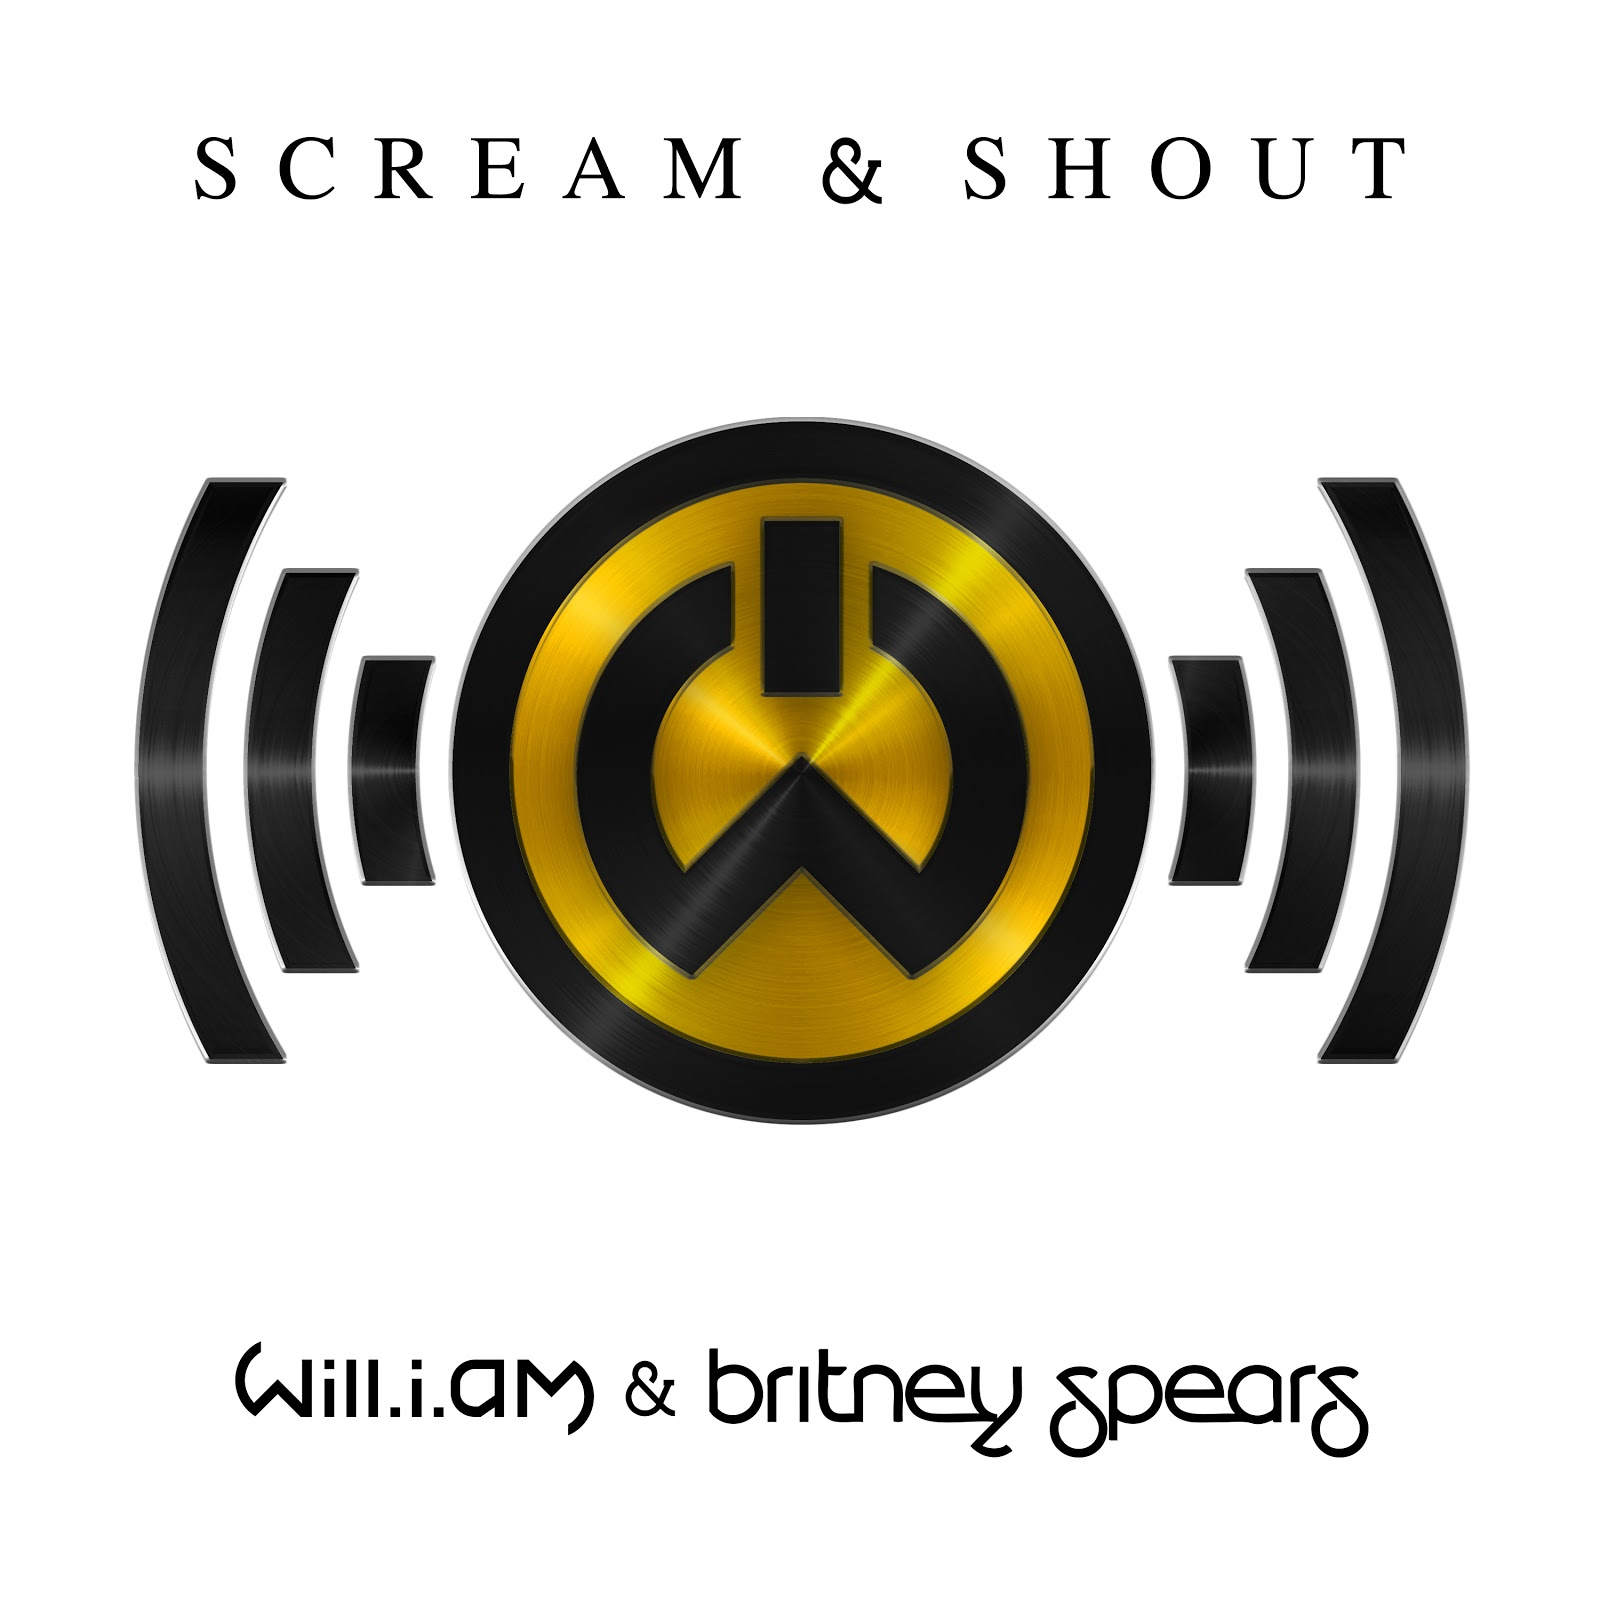 http://1.bp.blogspot.com/-LMjlr7RuQtk/UKrDweuF6HI/AAAAAAAAHYs/3et8s7LoOXc/s1600/william-scream-artwork.jpg